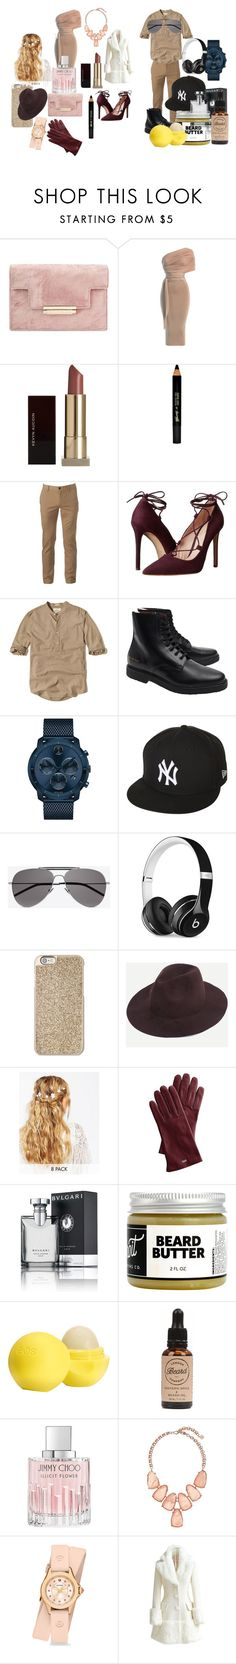 """""""Date 12: Match Made from Heaven <3"""" by anikivance ❤ liked on Polyvore featuring Kevyn Aucoin, Barry M, Urban Pipeline, Massimo Matteo, Hollister Co., Common Projects, Movado, New Era, Yves Saint Laurent and Beats by Dr. Dre"""